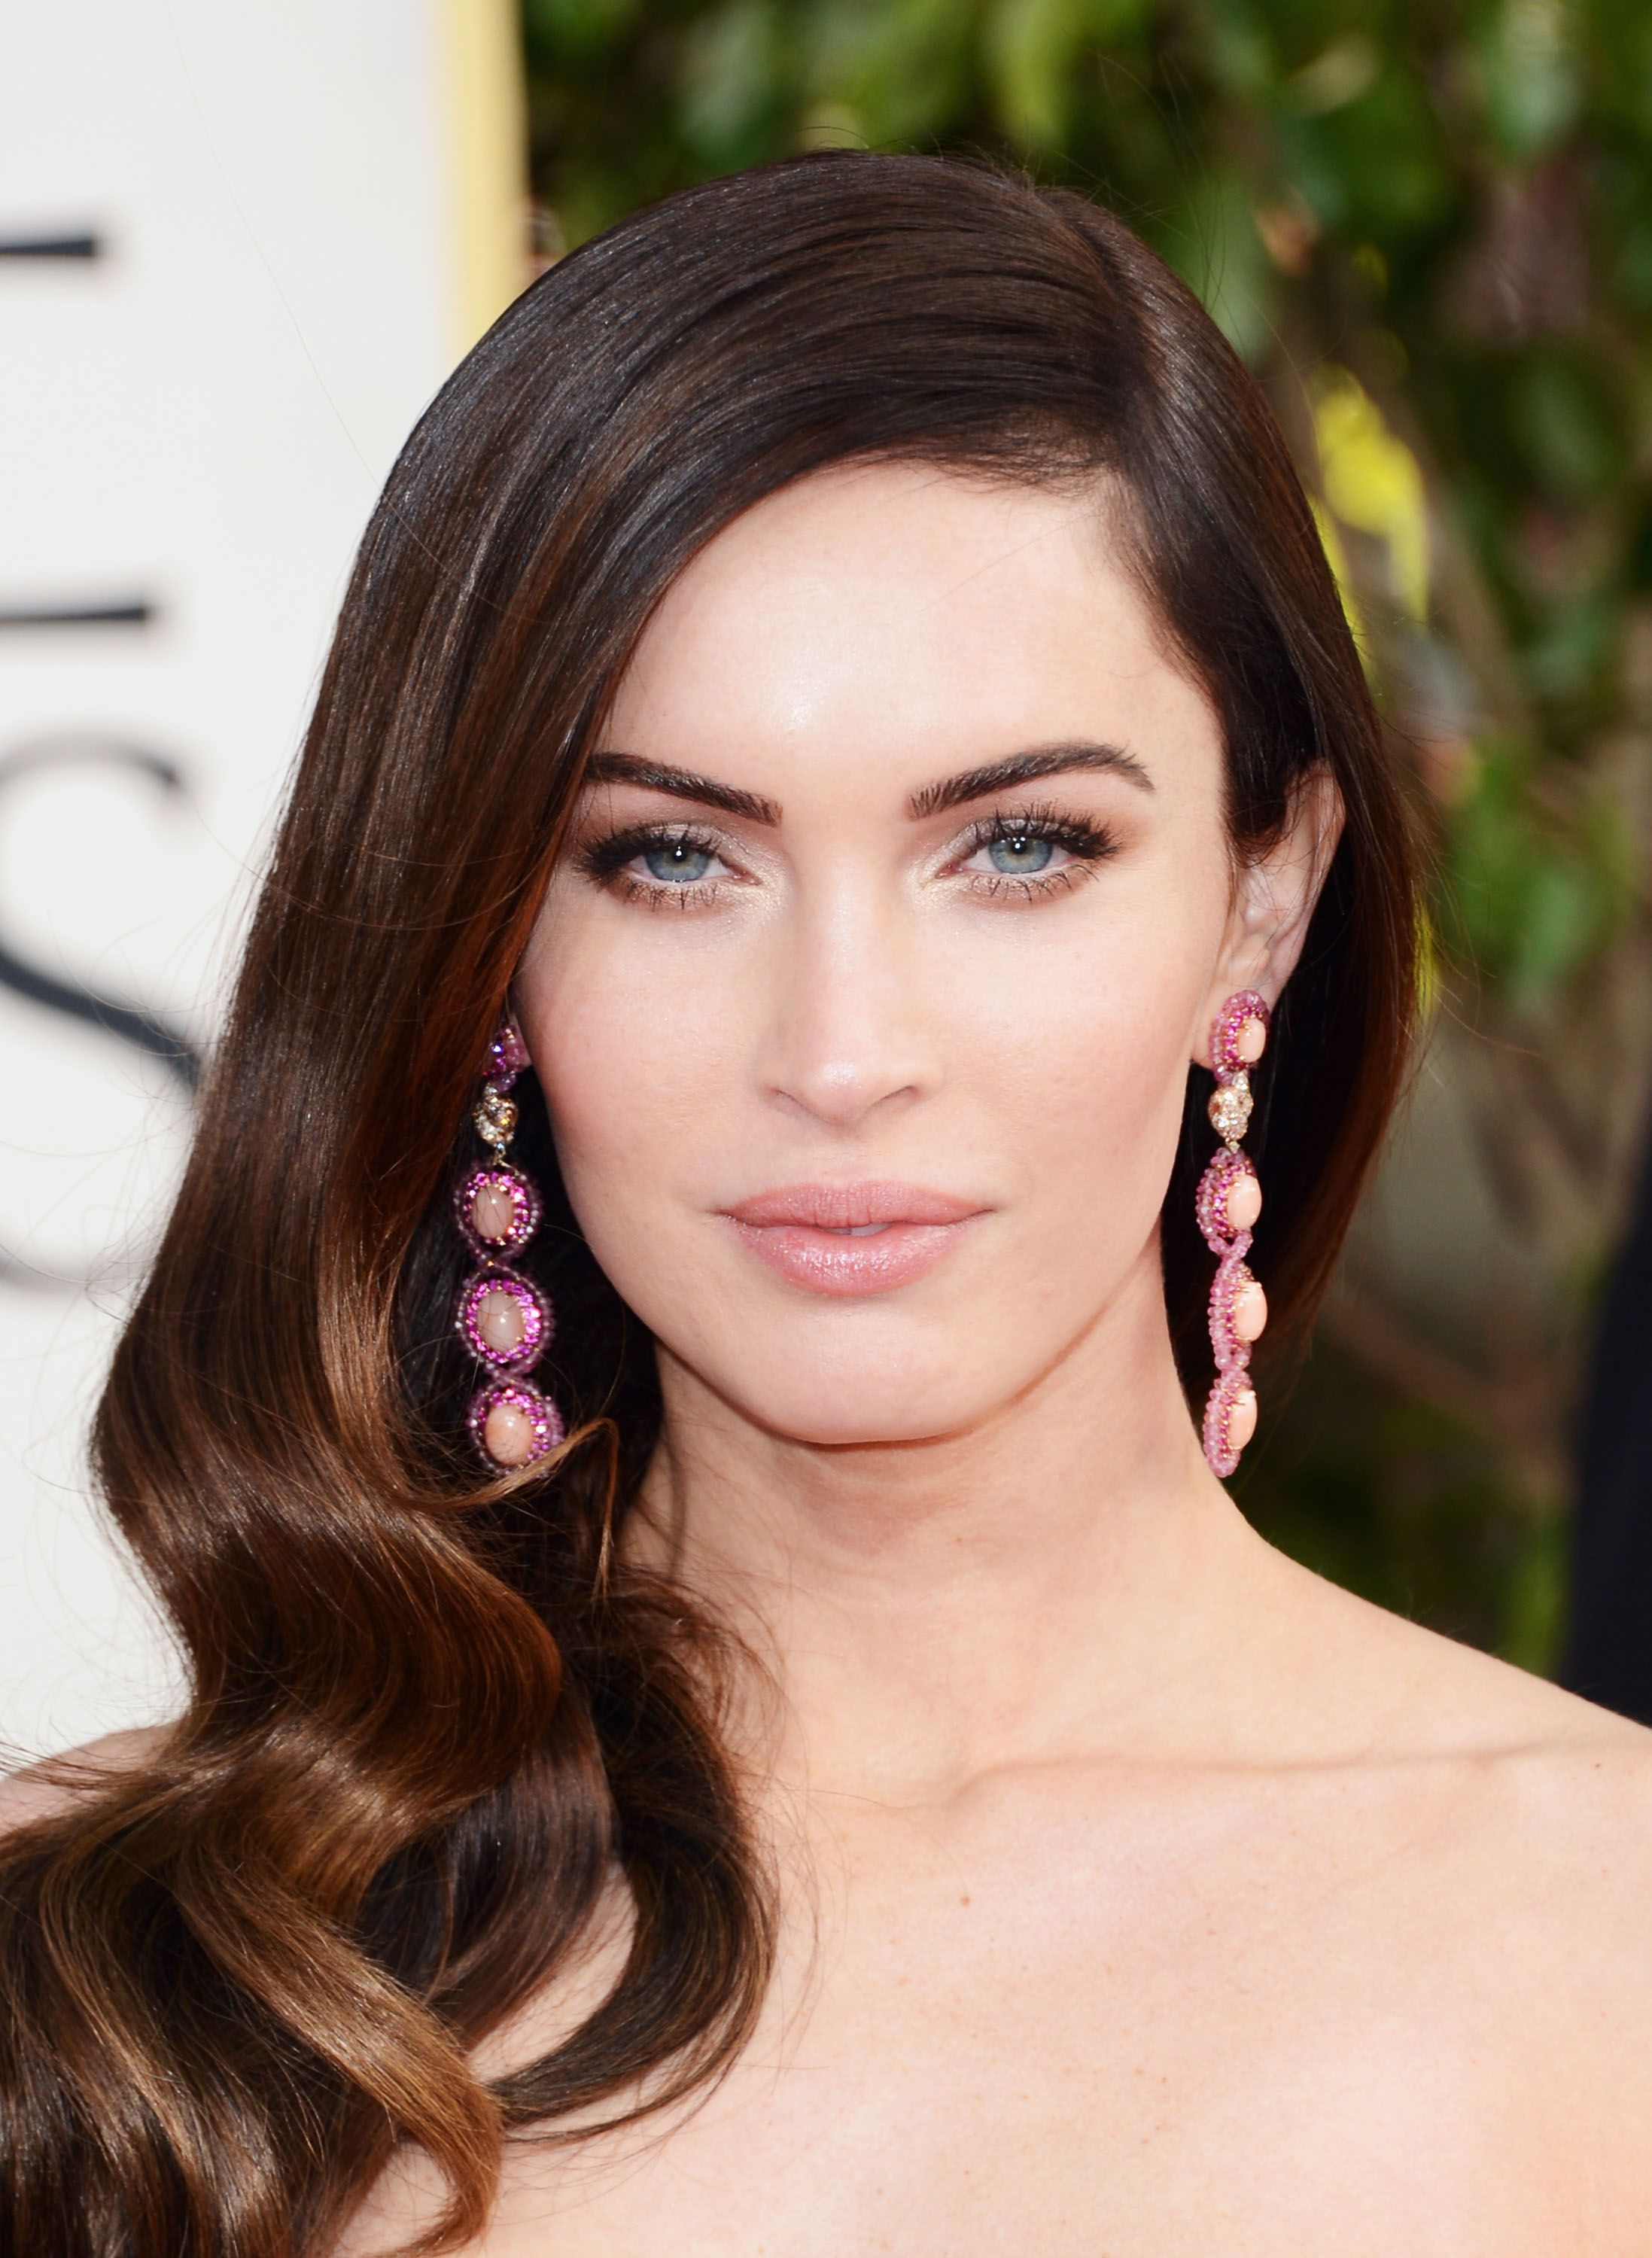 40 Best Celebrity Eyebrow Shapes In 2017 Guide To Perfect Eyebrows